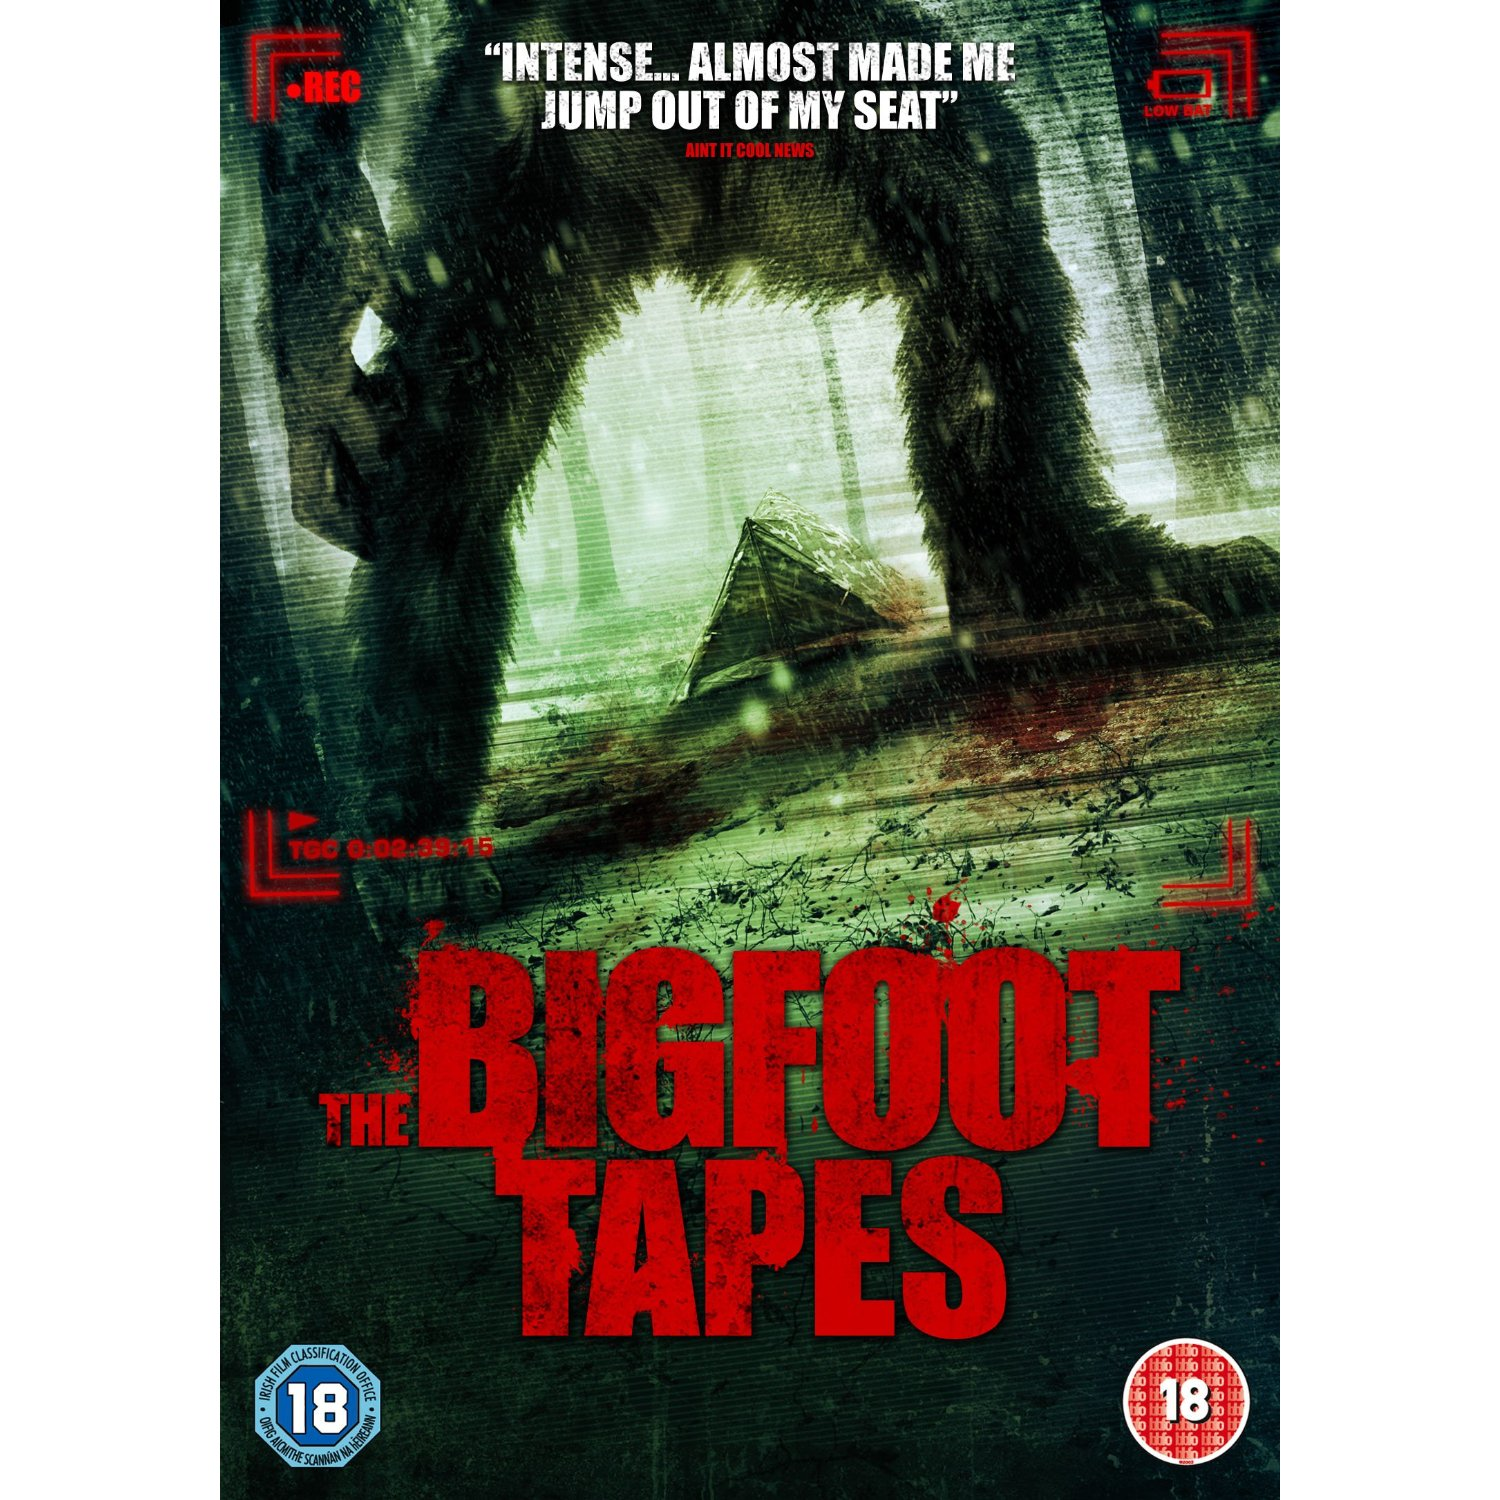 Win A Copy Of Bigfoot Tapes On DVD